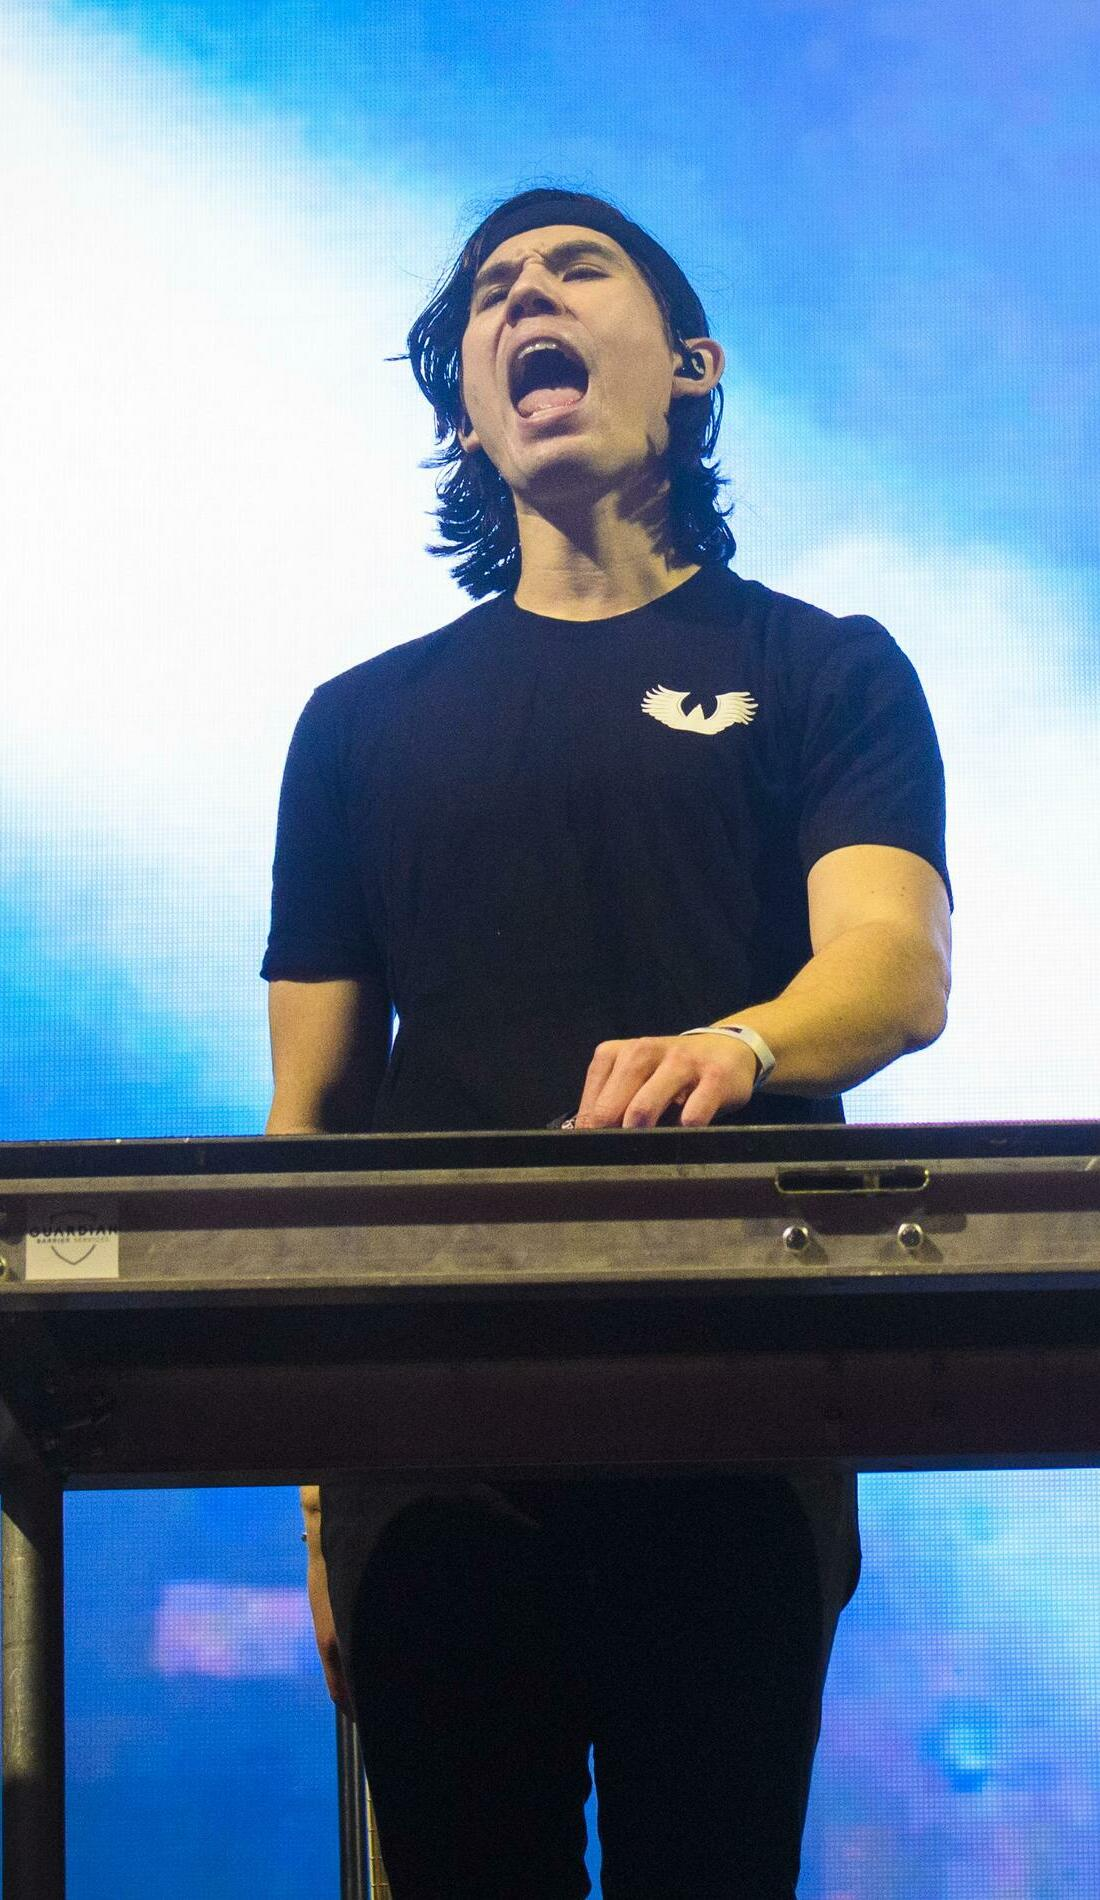 A Gryffin live event